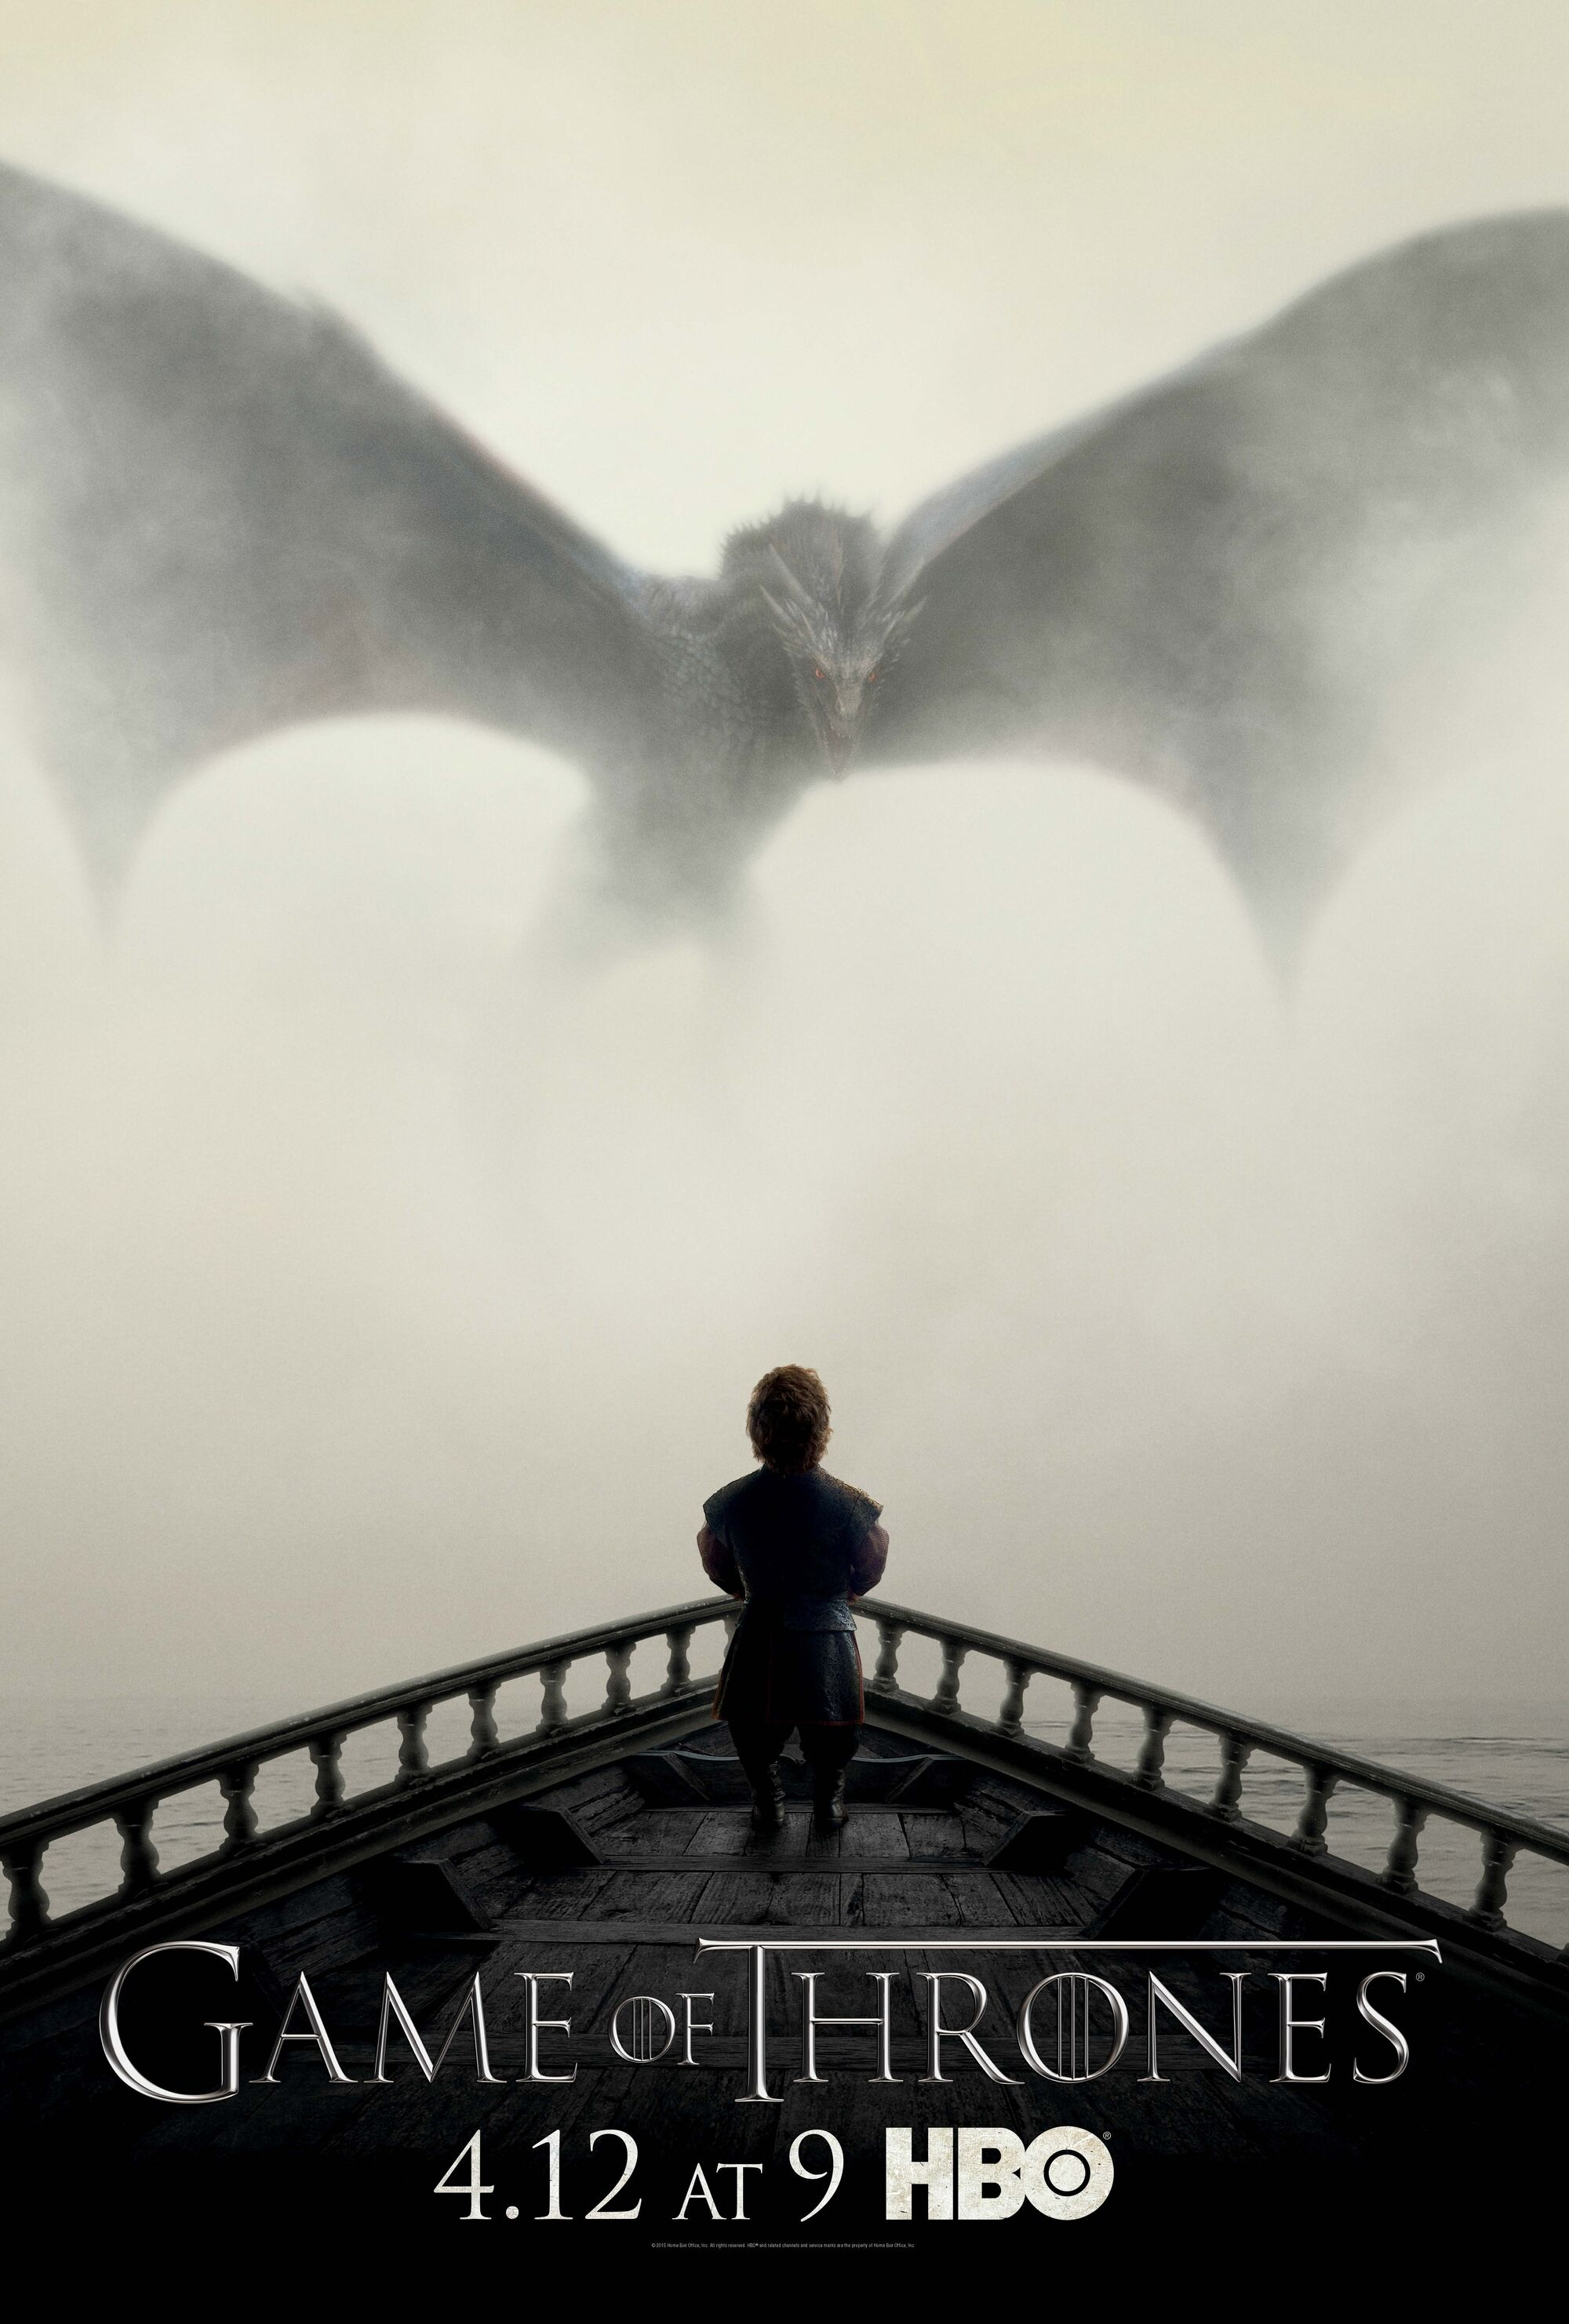 game of thrones season 3 episode 5 torrent kickass